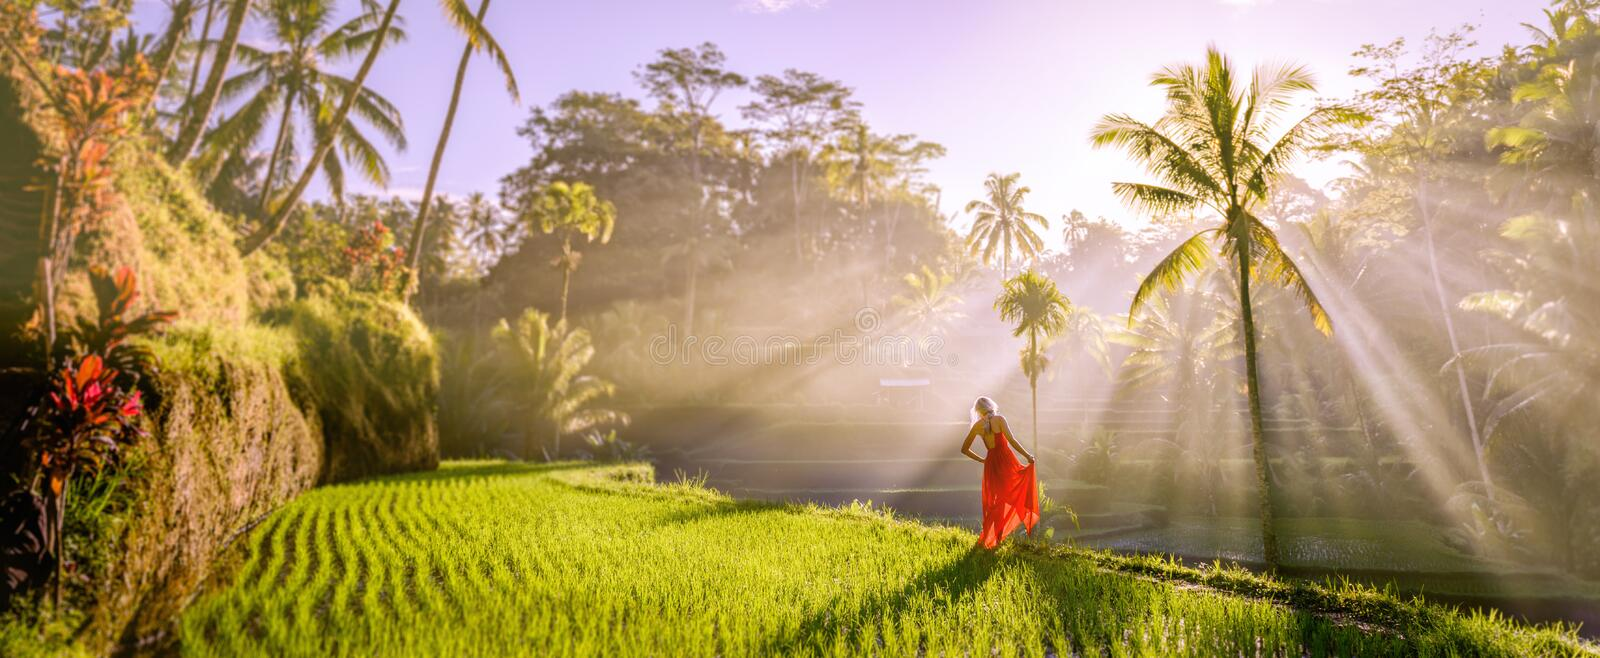 Beautiful model in red dress at Tegalalang Rice Terrace royalty free stock image